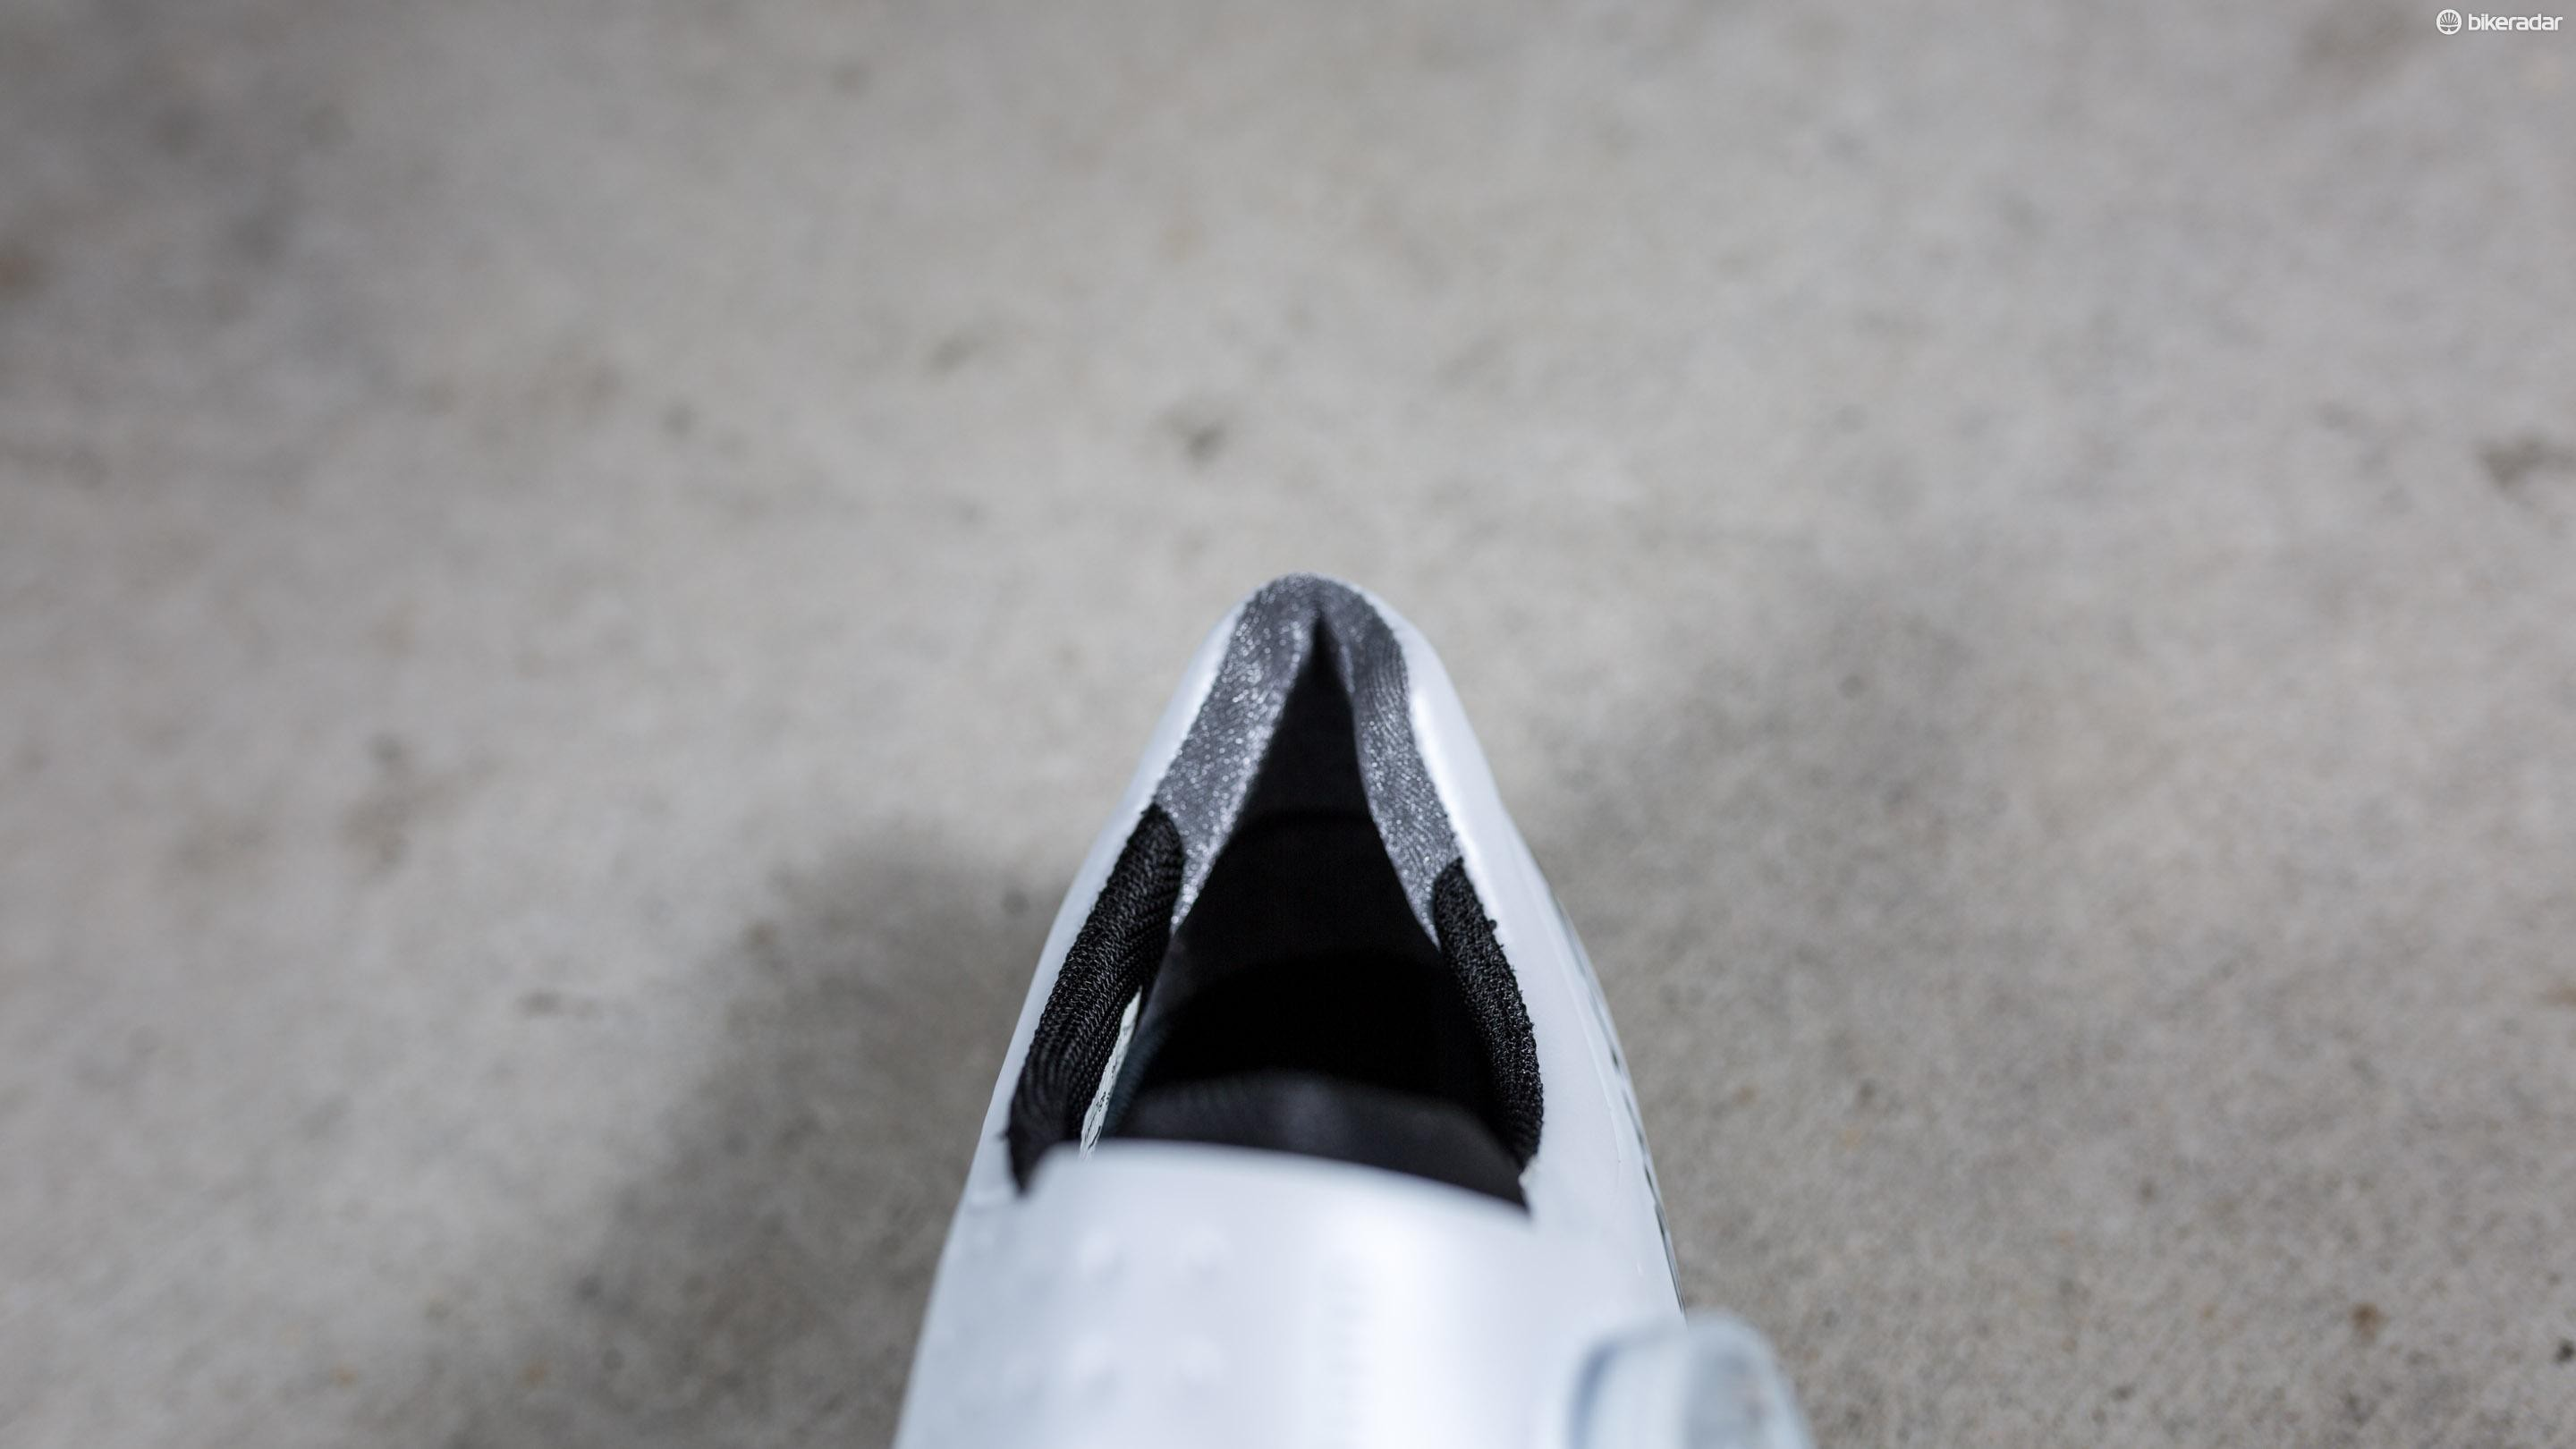 The heel is lined with silver one-way thread, but we still noticed a tiny bit of heel lift